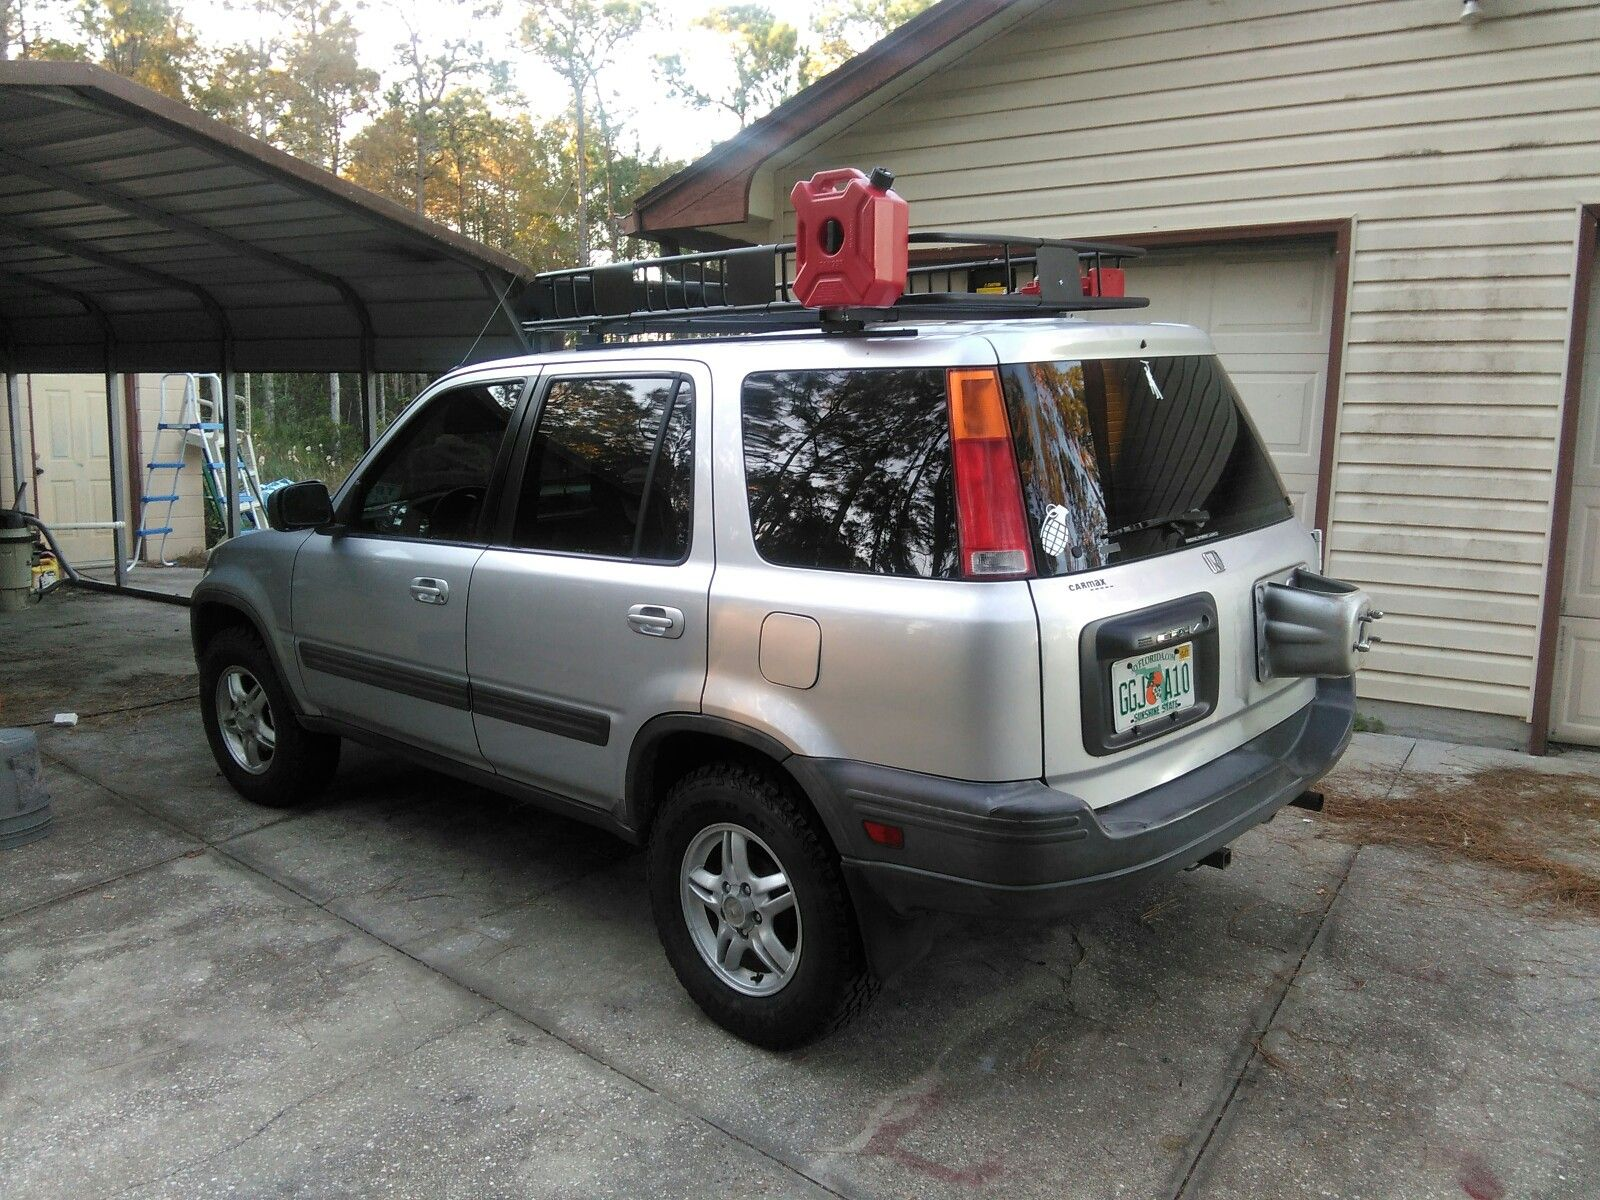 99 Honda Crv, Custom Spring Spacer Lift, Roof Rack, Snorkel And A Bunch